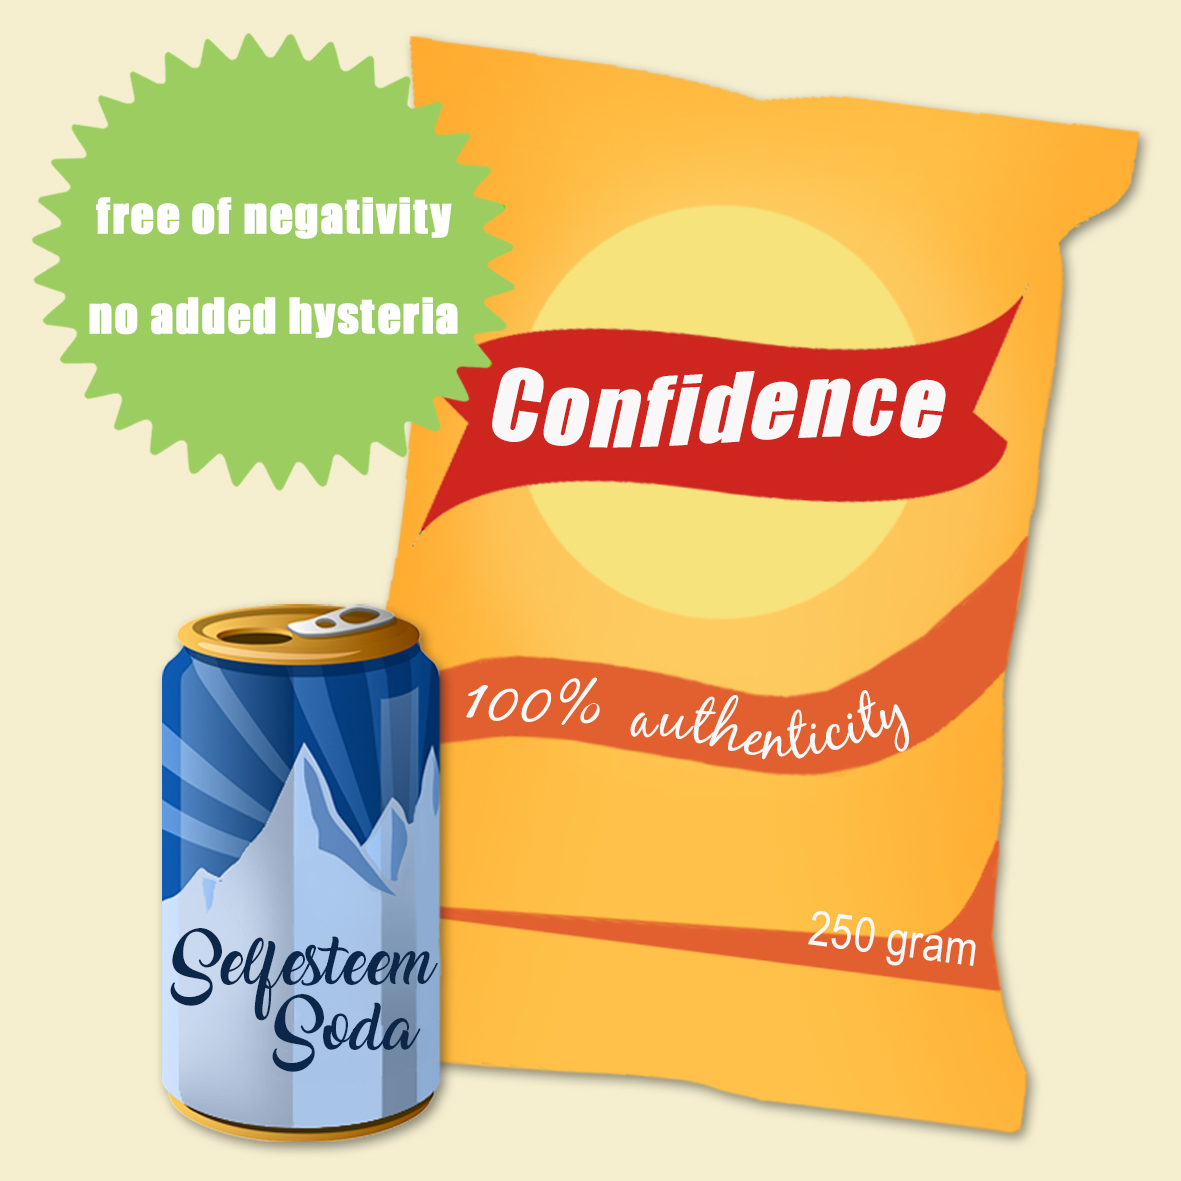 Confidence Chips: free of negativity